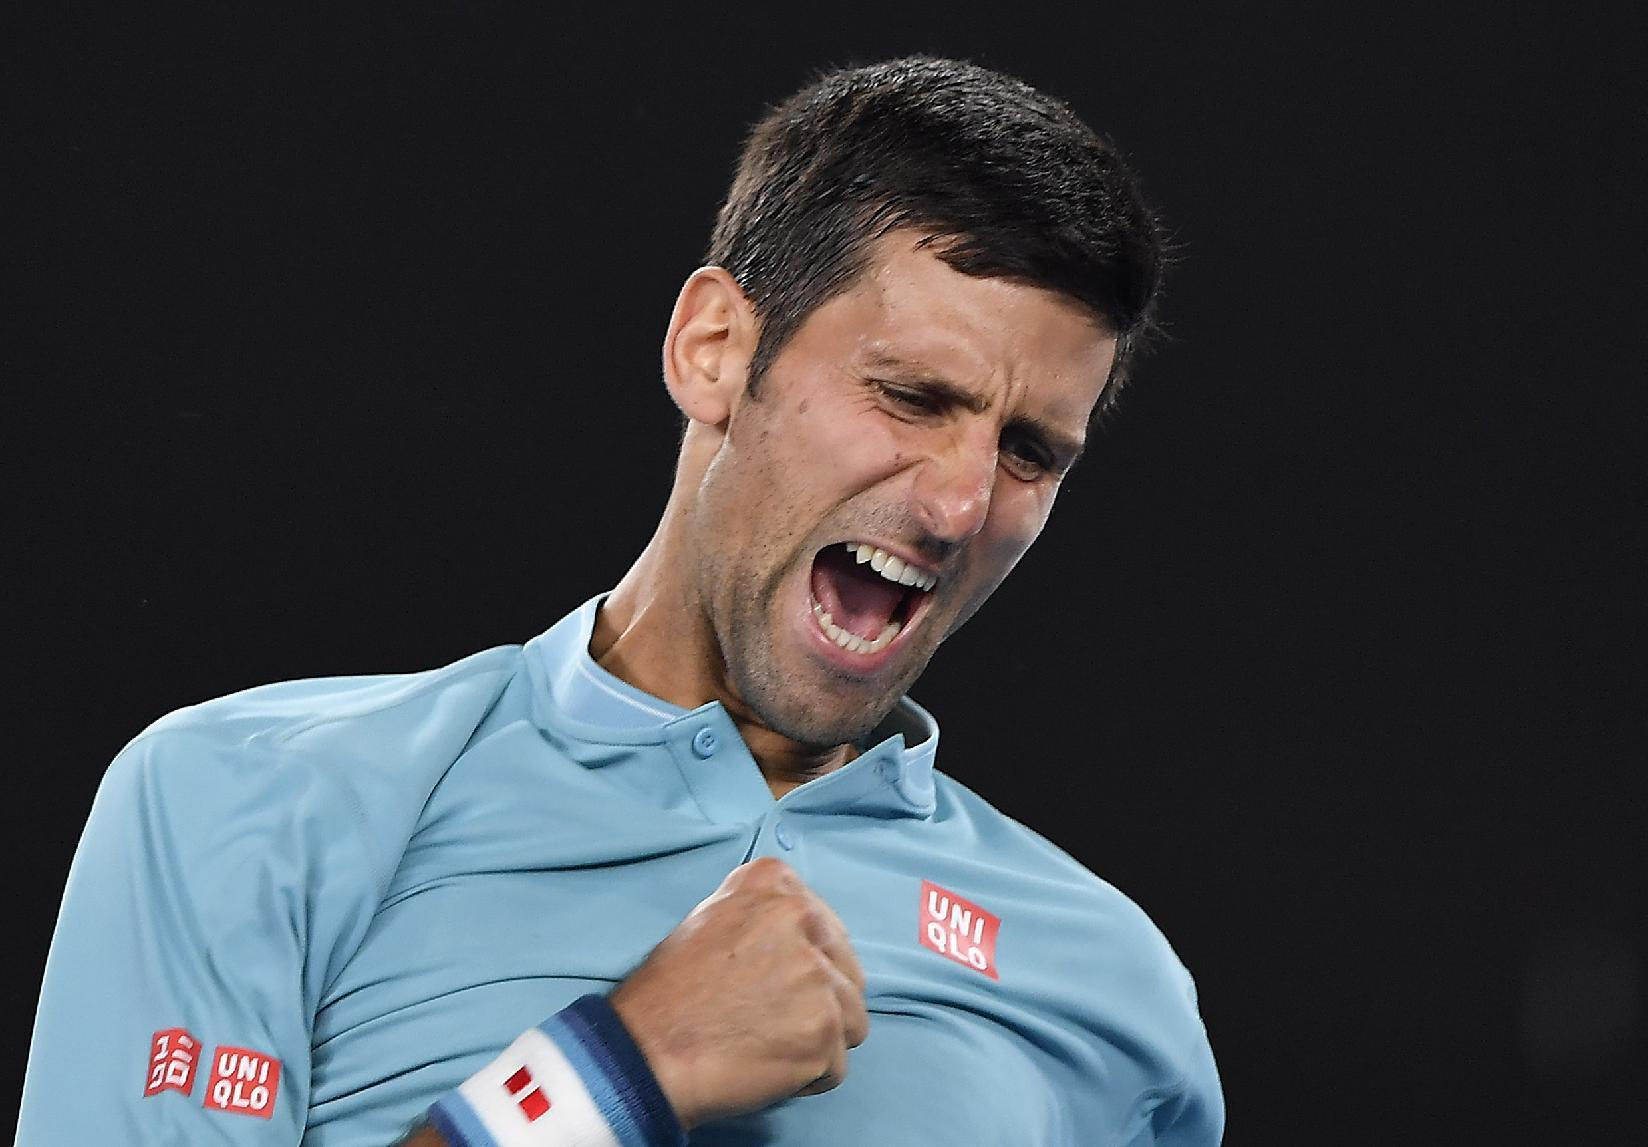 6-time champs Djokovic, Williams post Australian Open wins